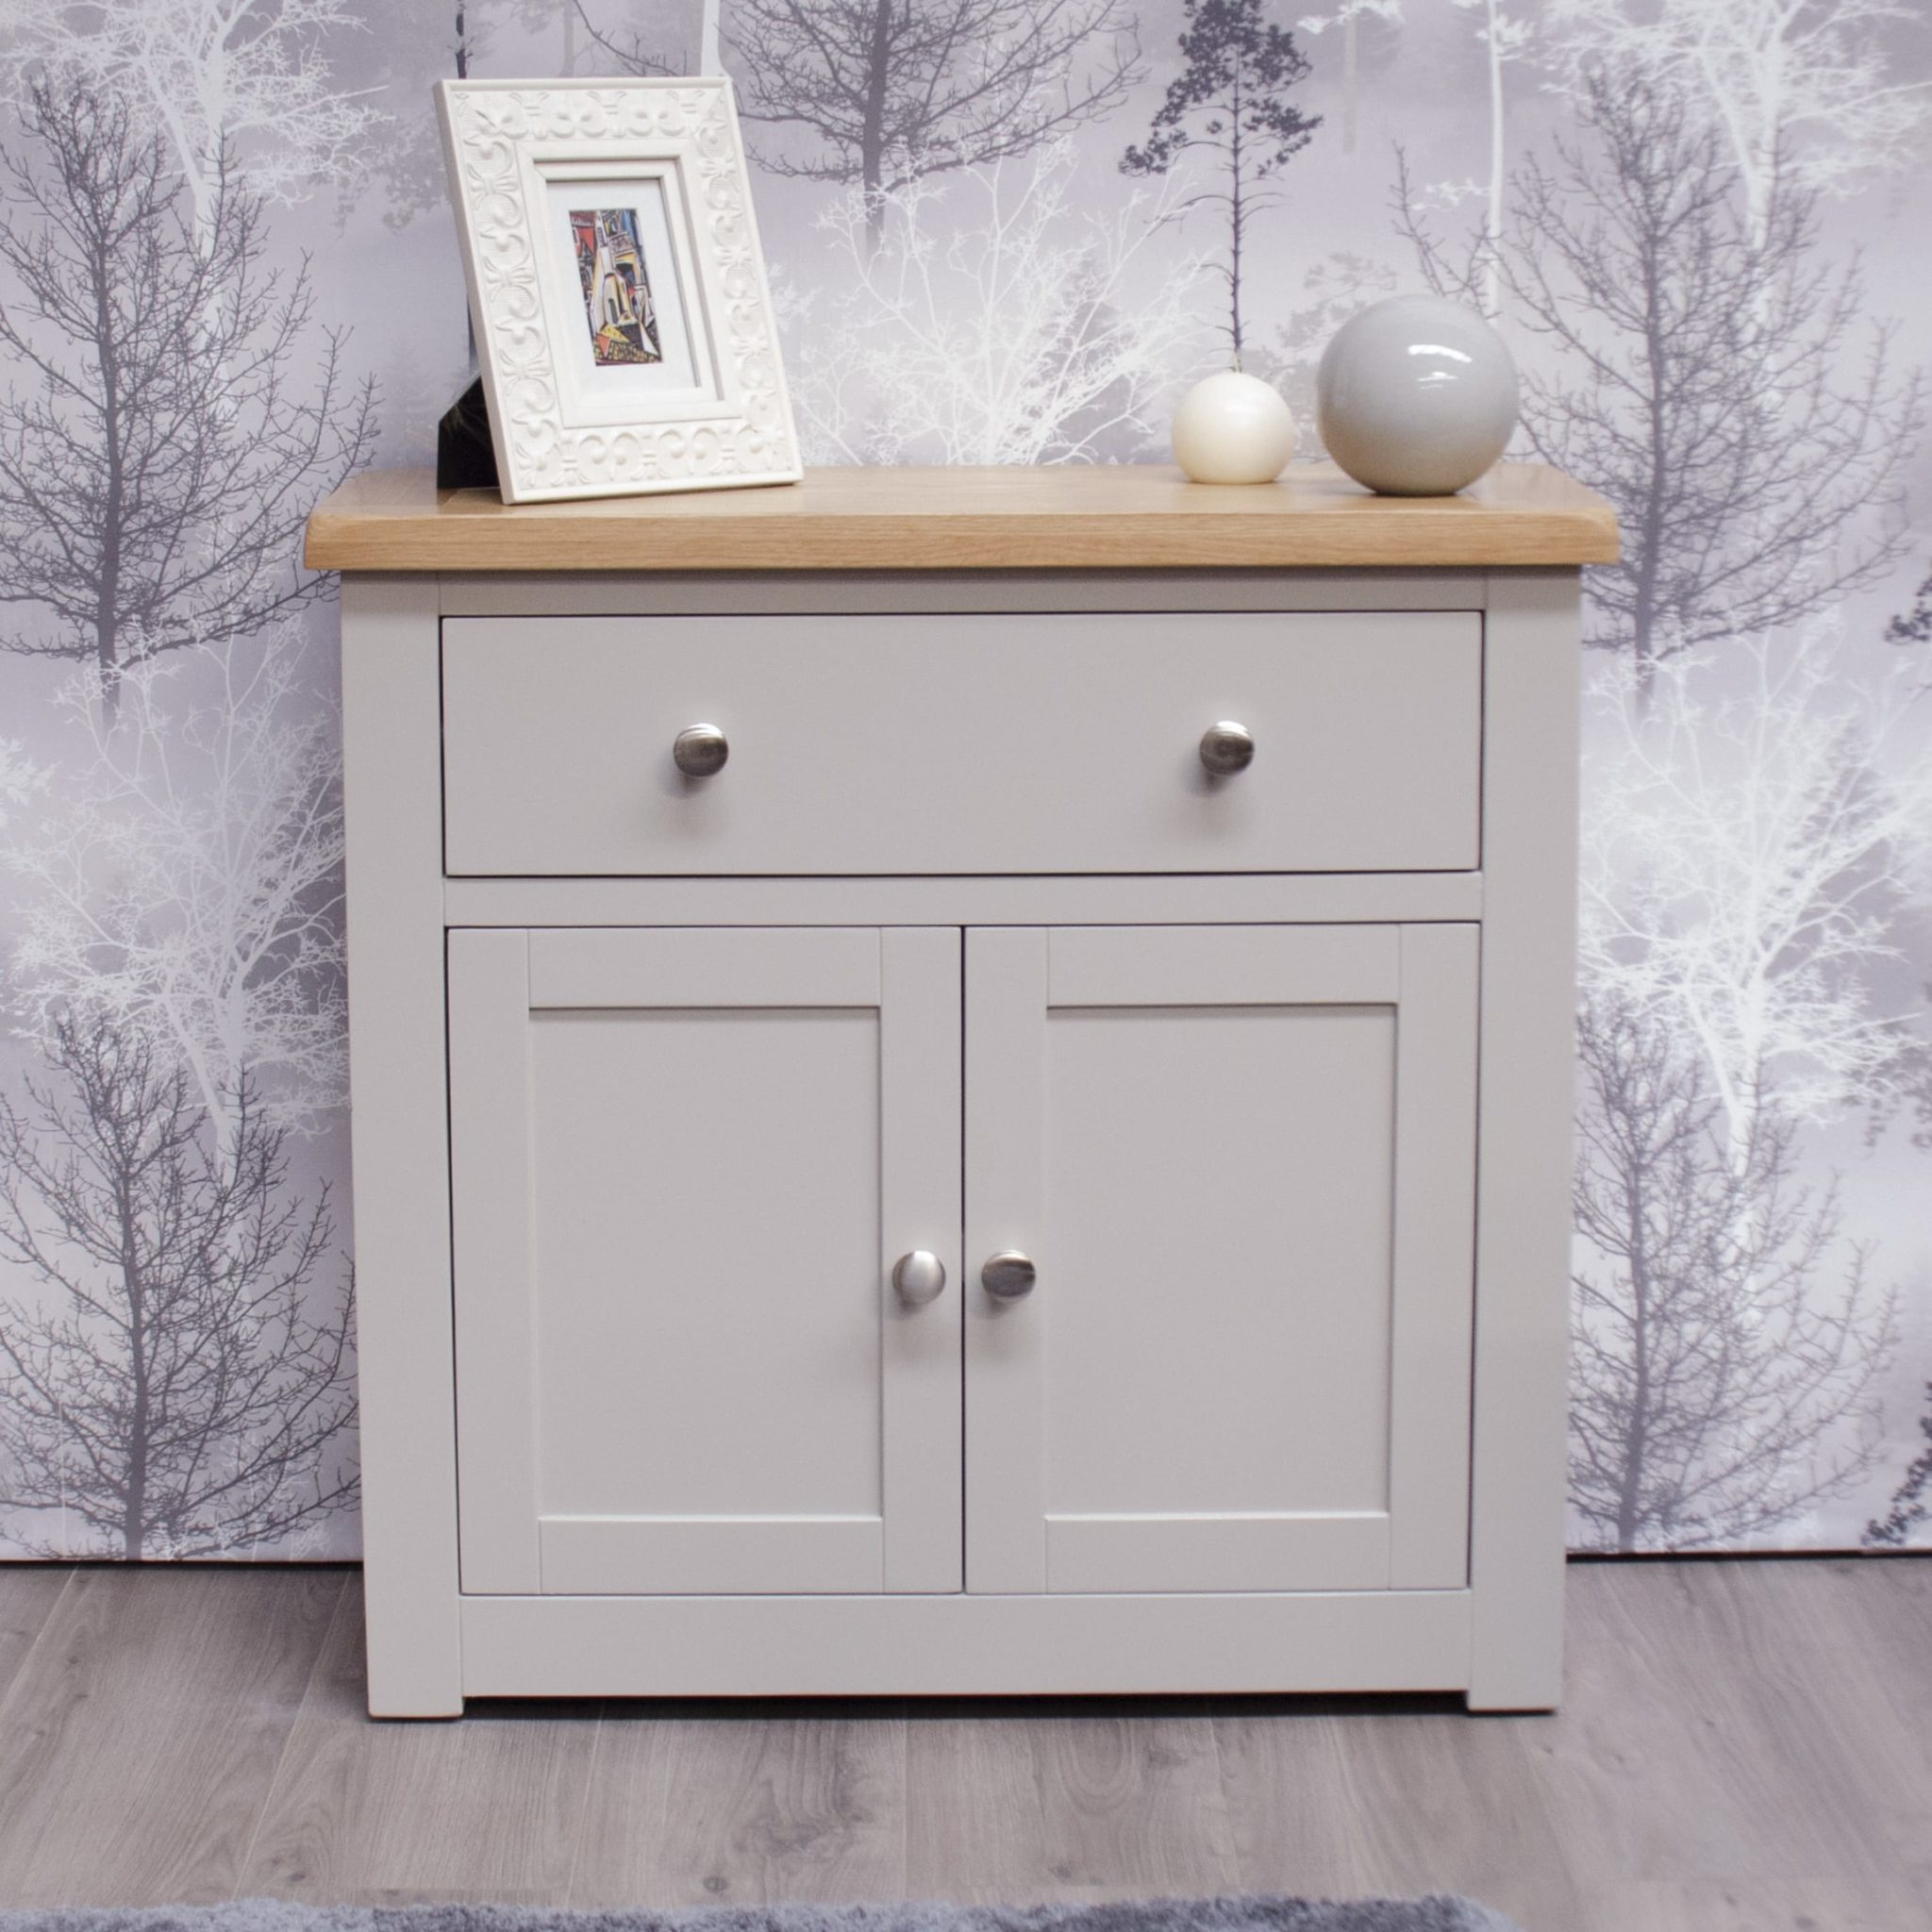 DIAOC diamond painted small sideboard room set